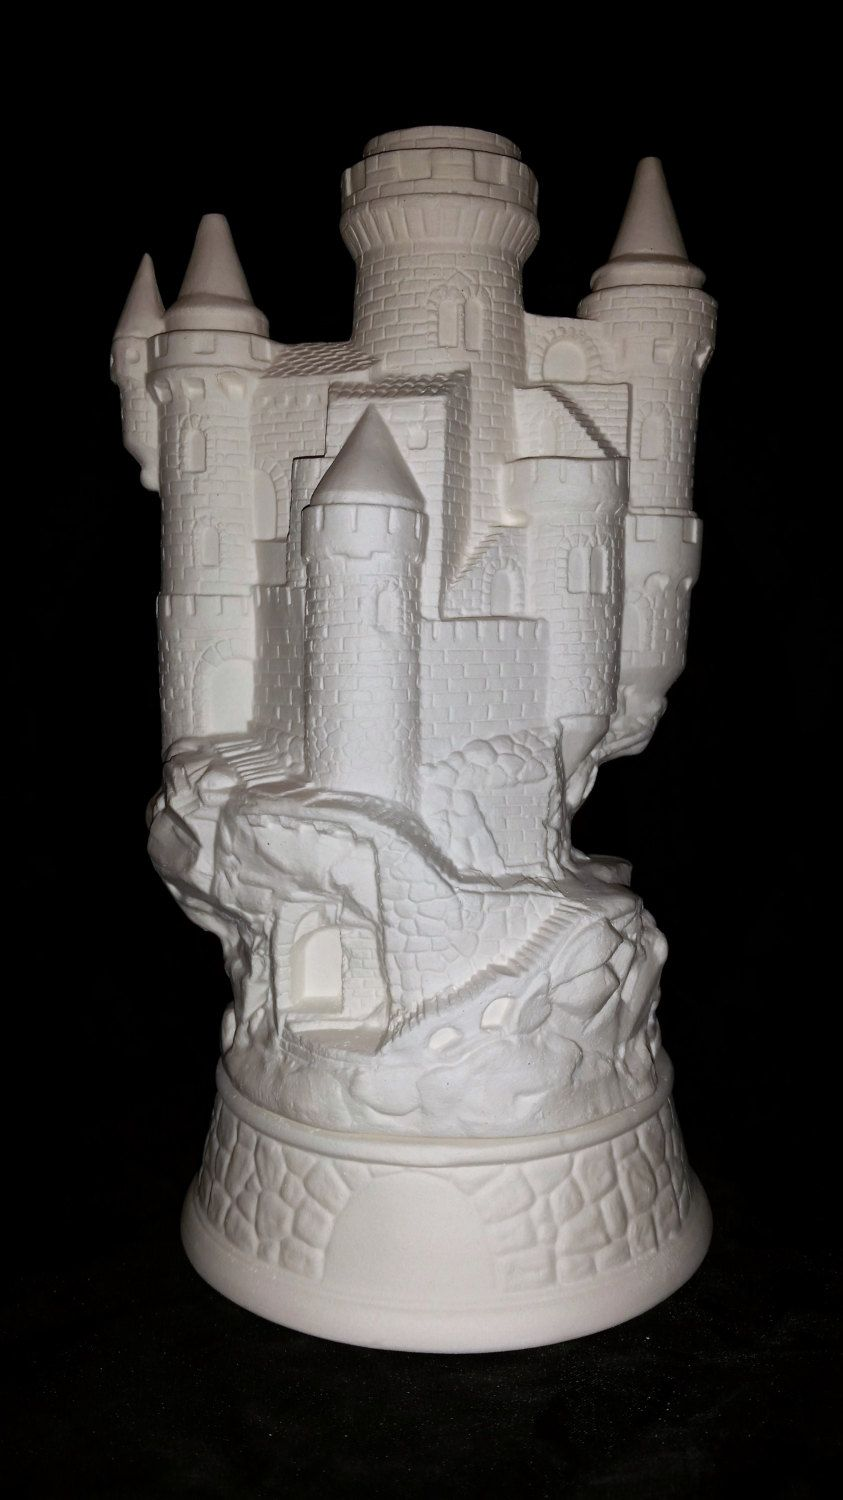 Ready to paint medieval castle smoker incense burner unpainted ready to paint medieval castle smoker incense burner unpainted ceramic bisque paint your own pottery dailygadgetfo Choice Image